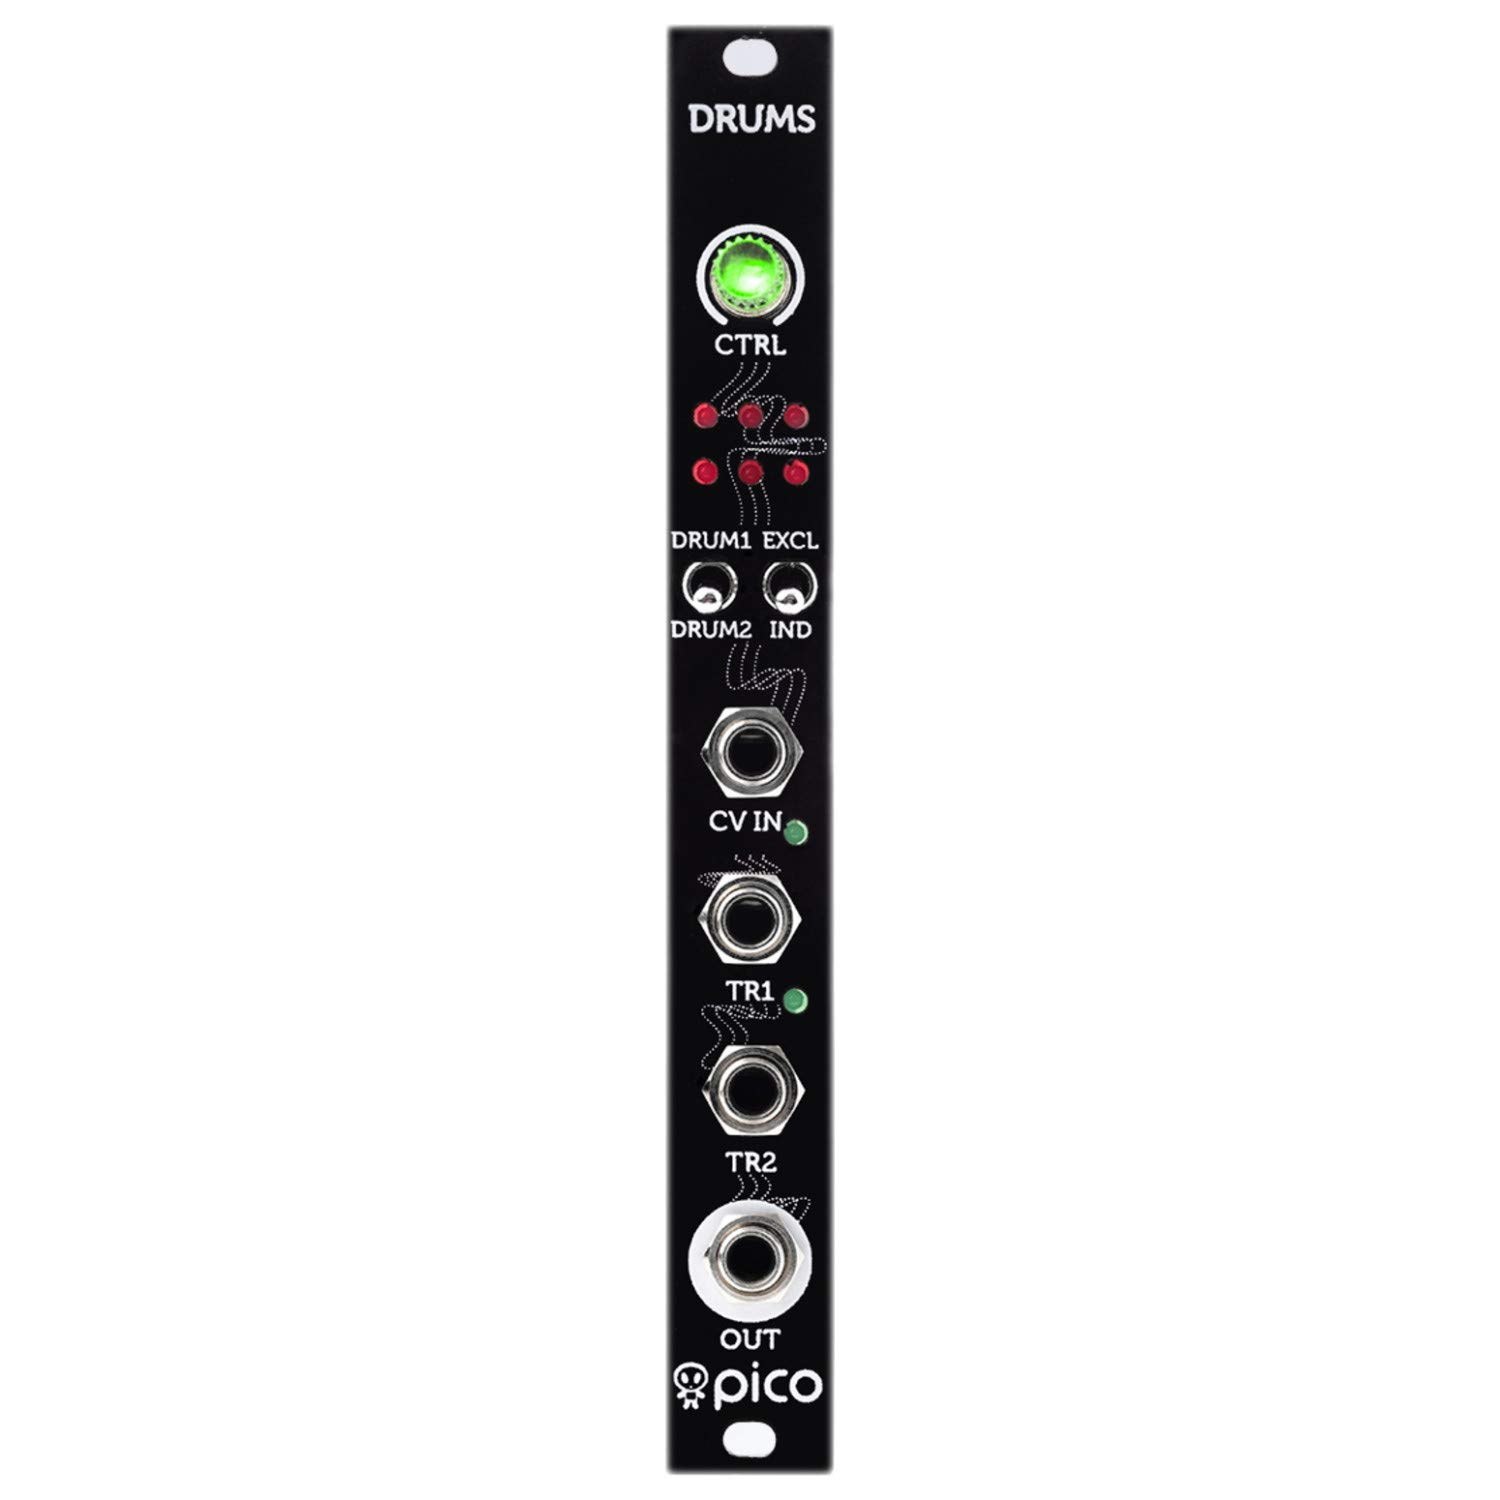 Erica Pico Drums Eurorack Synth Module